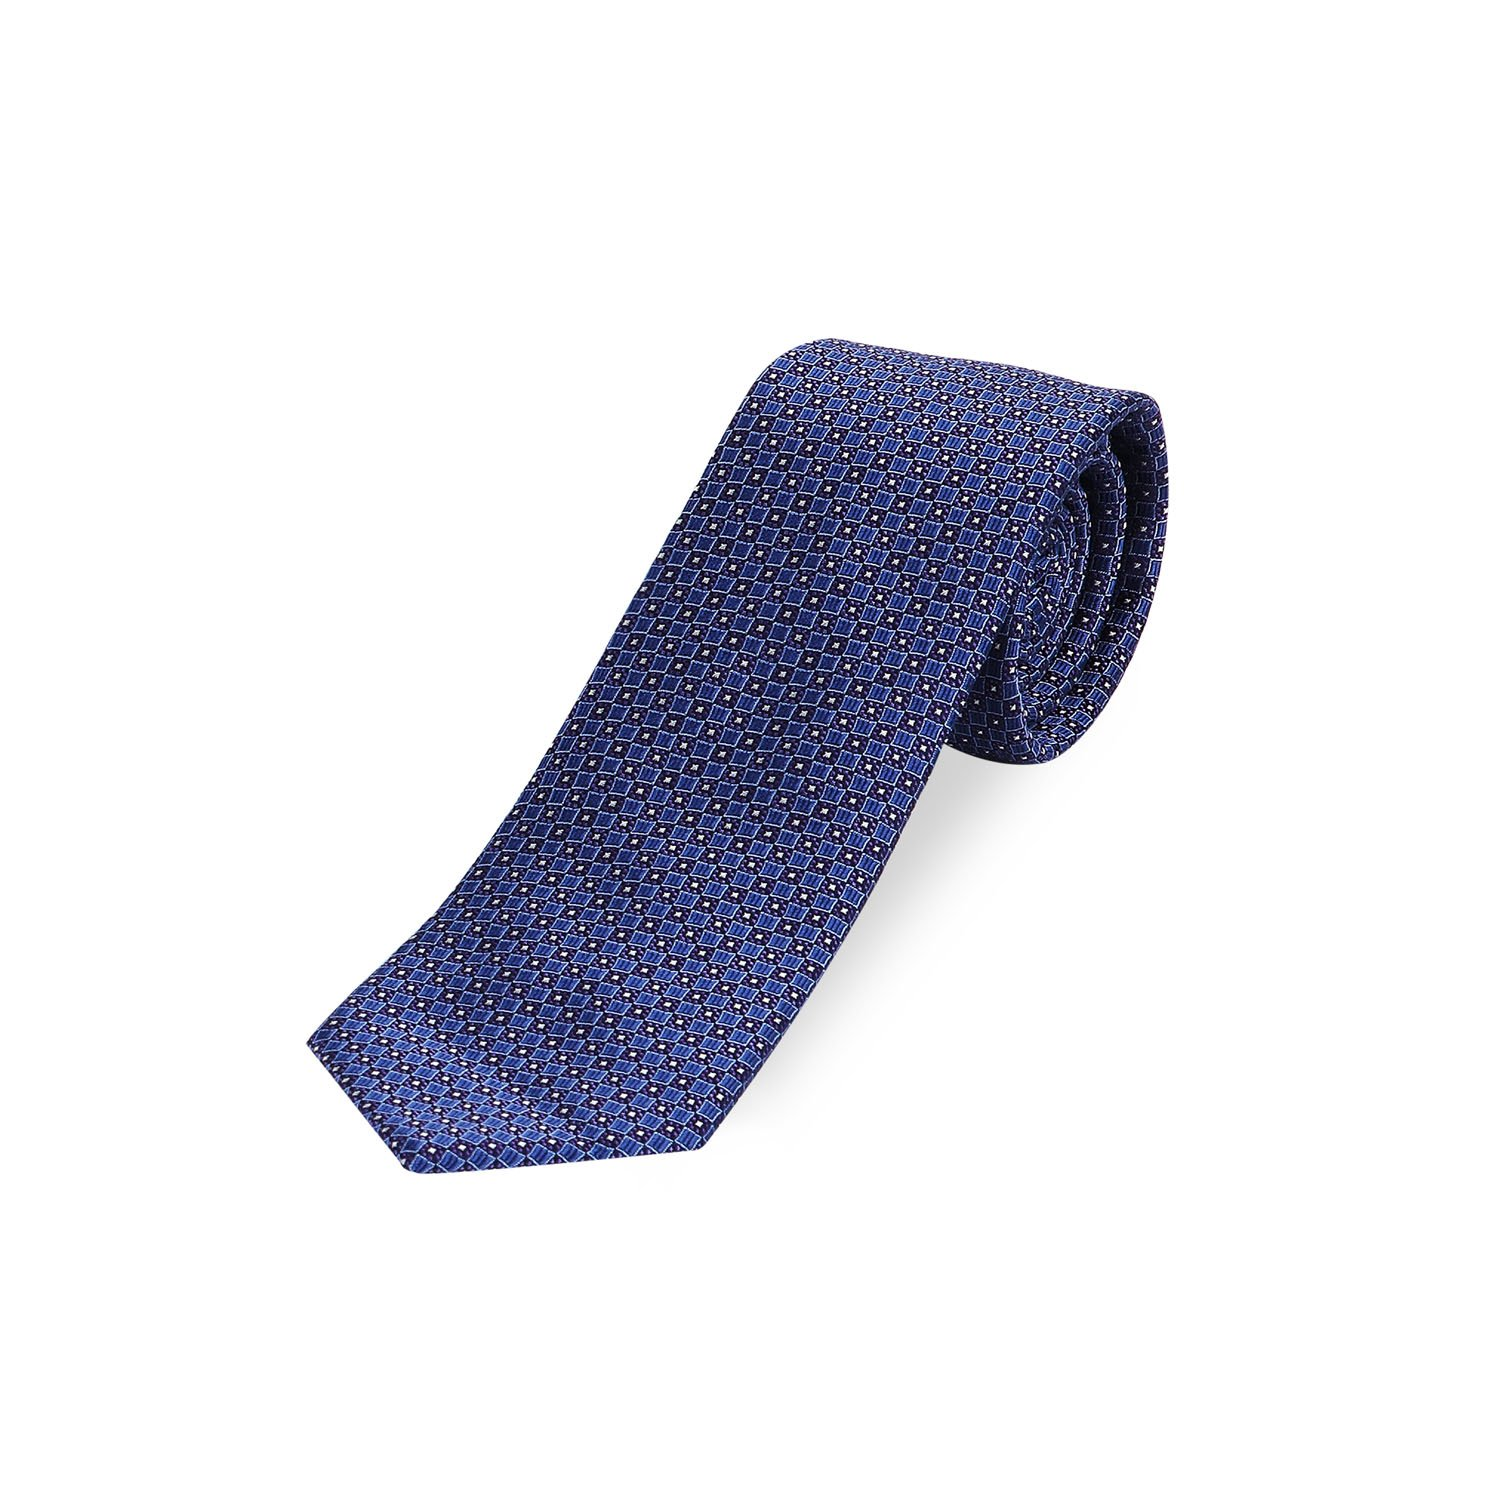 Men's Mulberry Silk Dot Ties, Luxe Jacquard Fabric Neckties for Business, Wedding, Casual